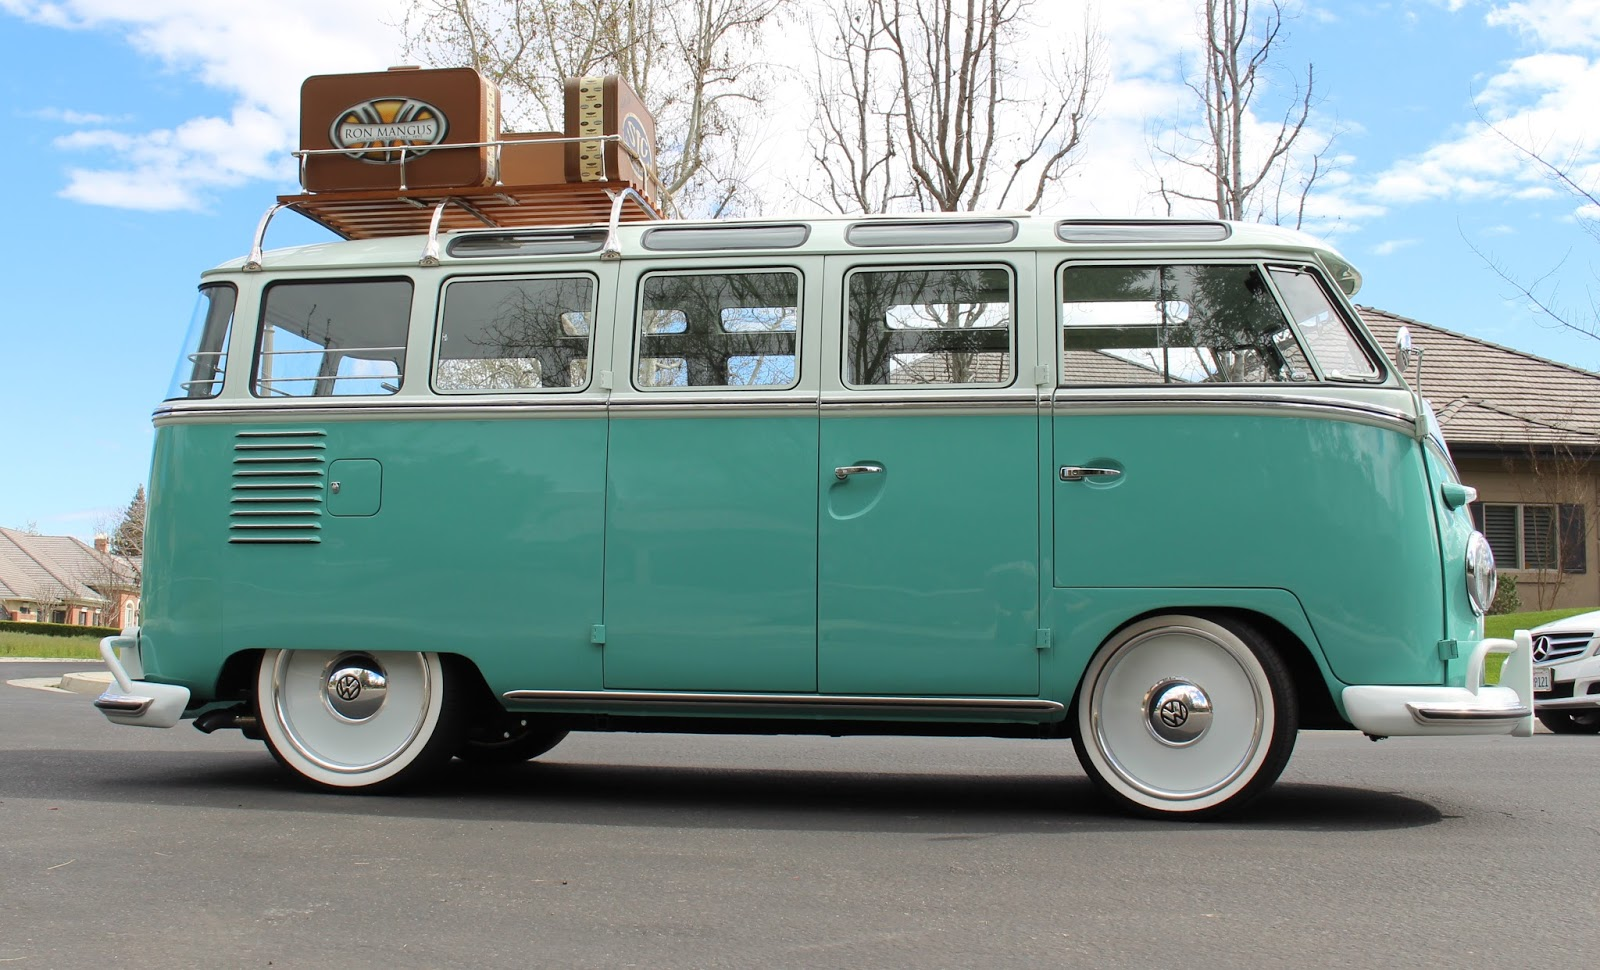 Covering Classic Cars : 1961 Volkswagen Bus From Our July Catalog Cover